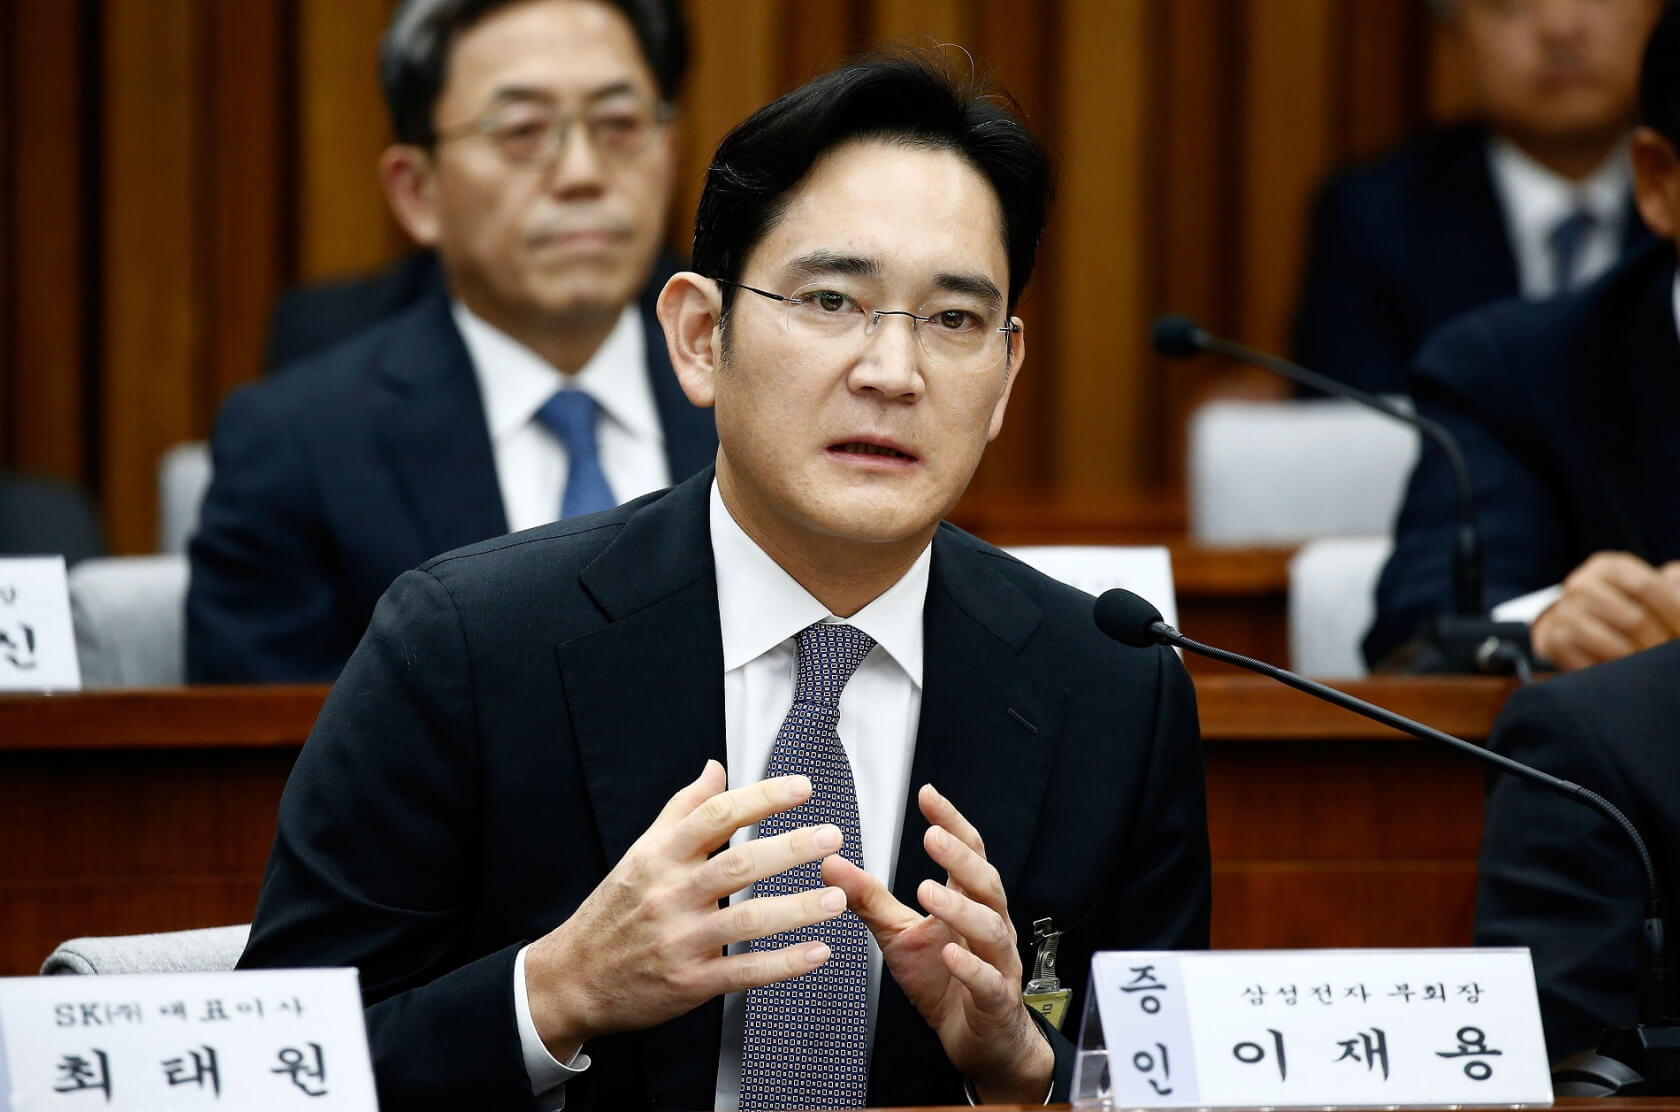 Samsung heir Lee Jae-yong sentenced to five years in prison for corruption